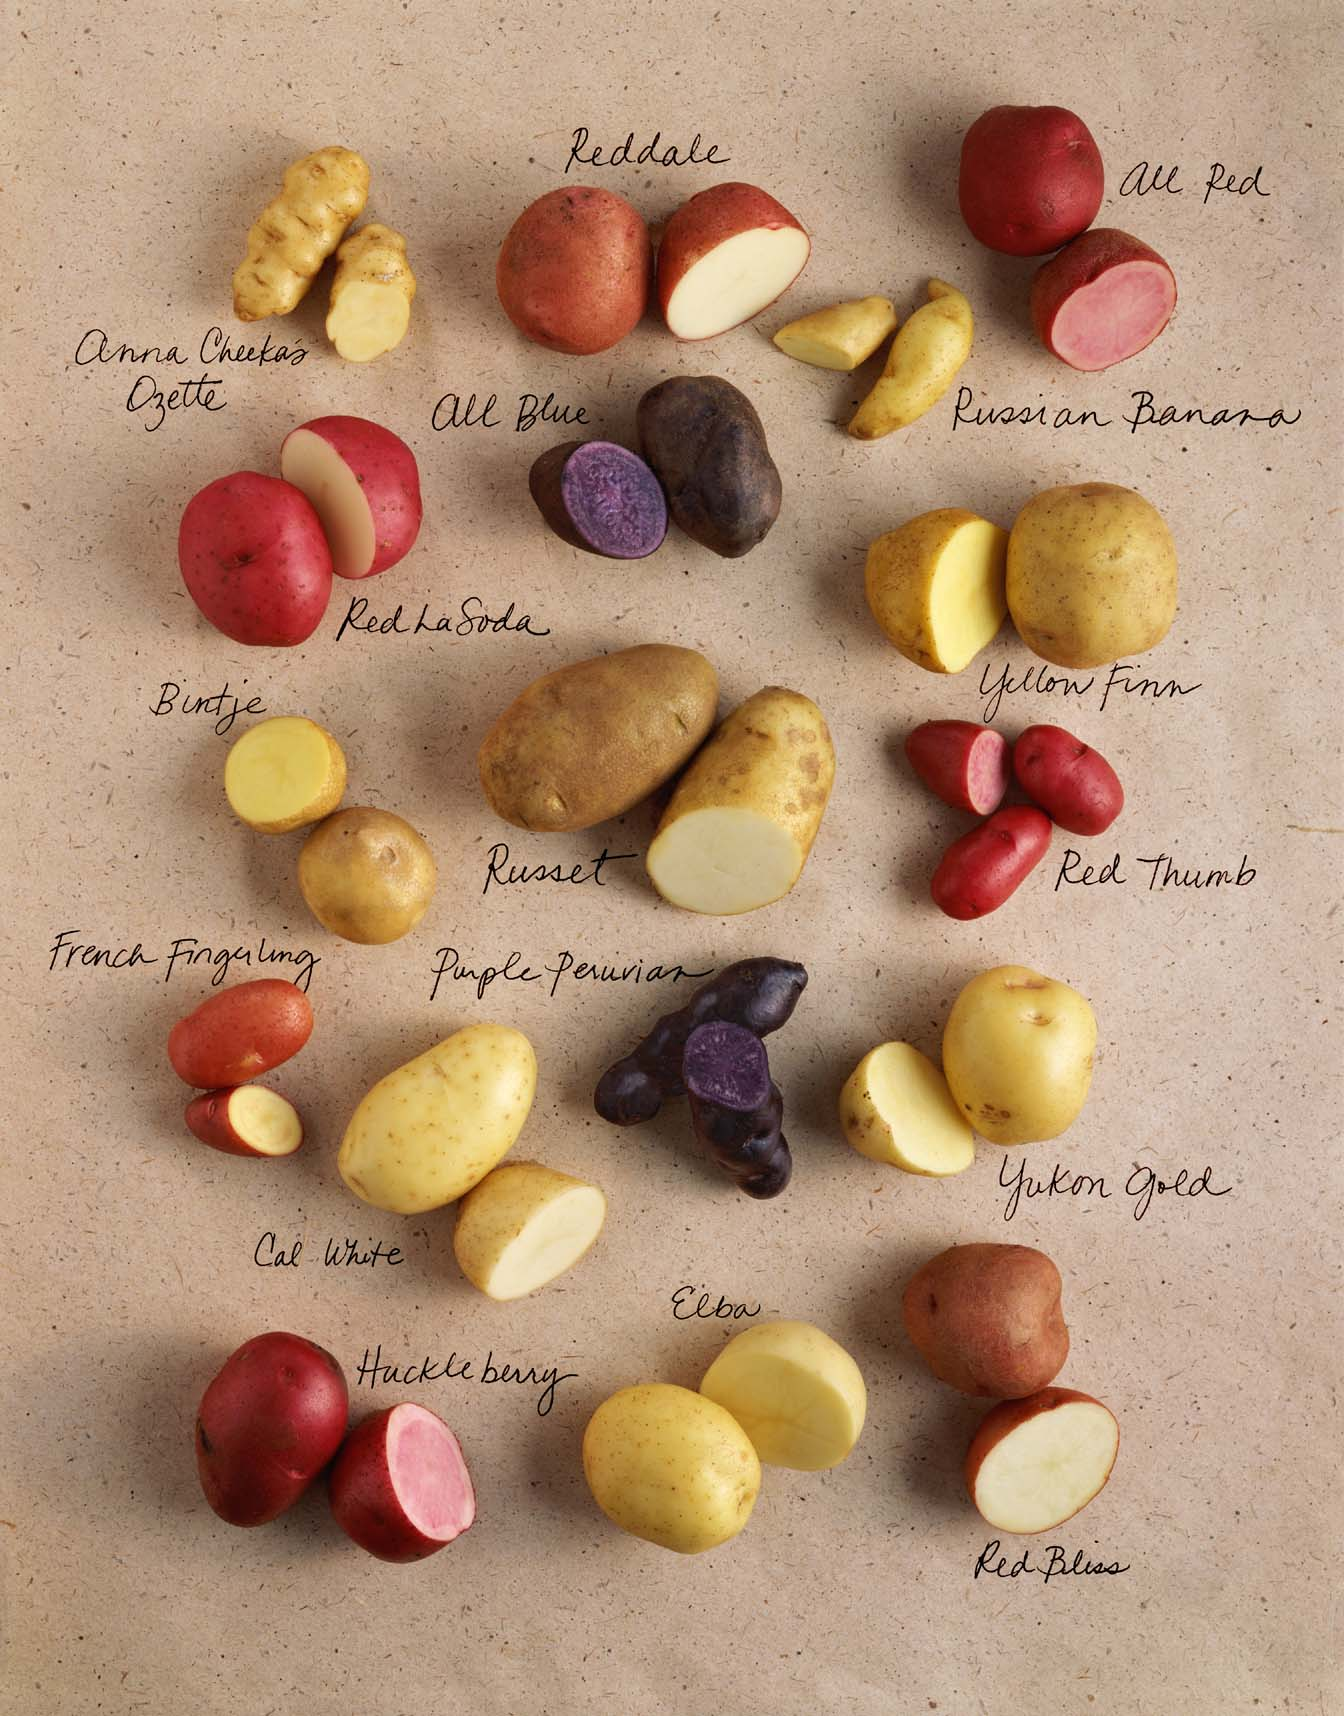 A Dietary Pattern That Includes Potatoes Is Associated With A Reduced Risk Of Developing Type 2